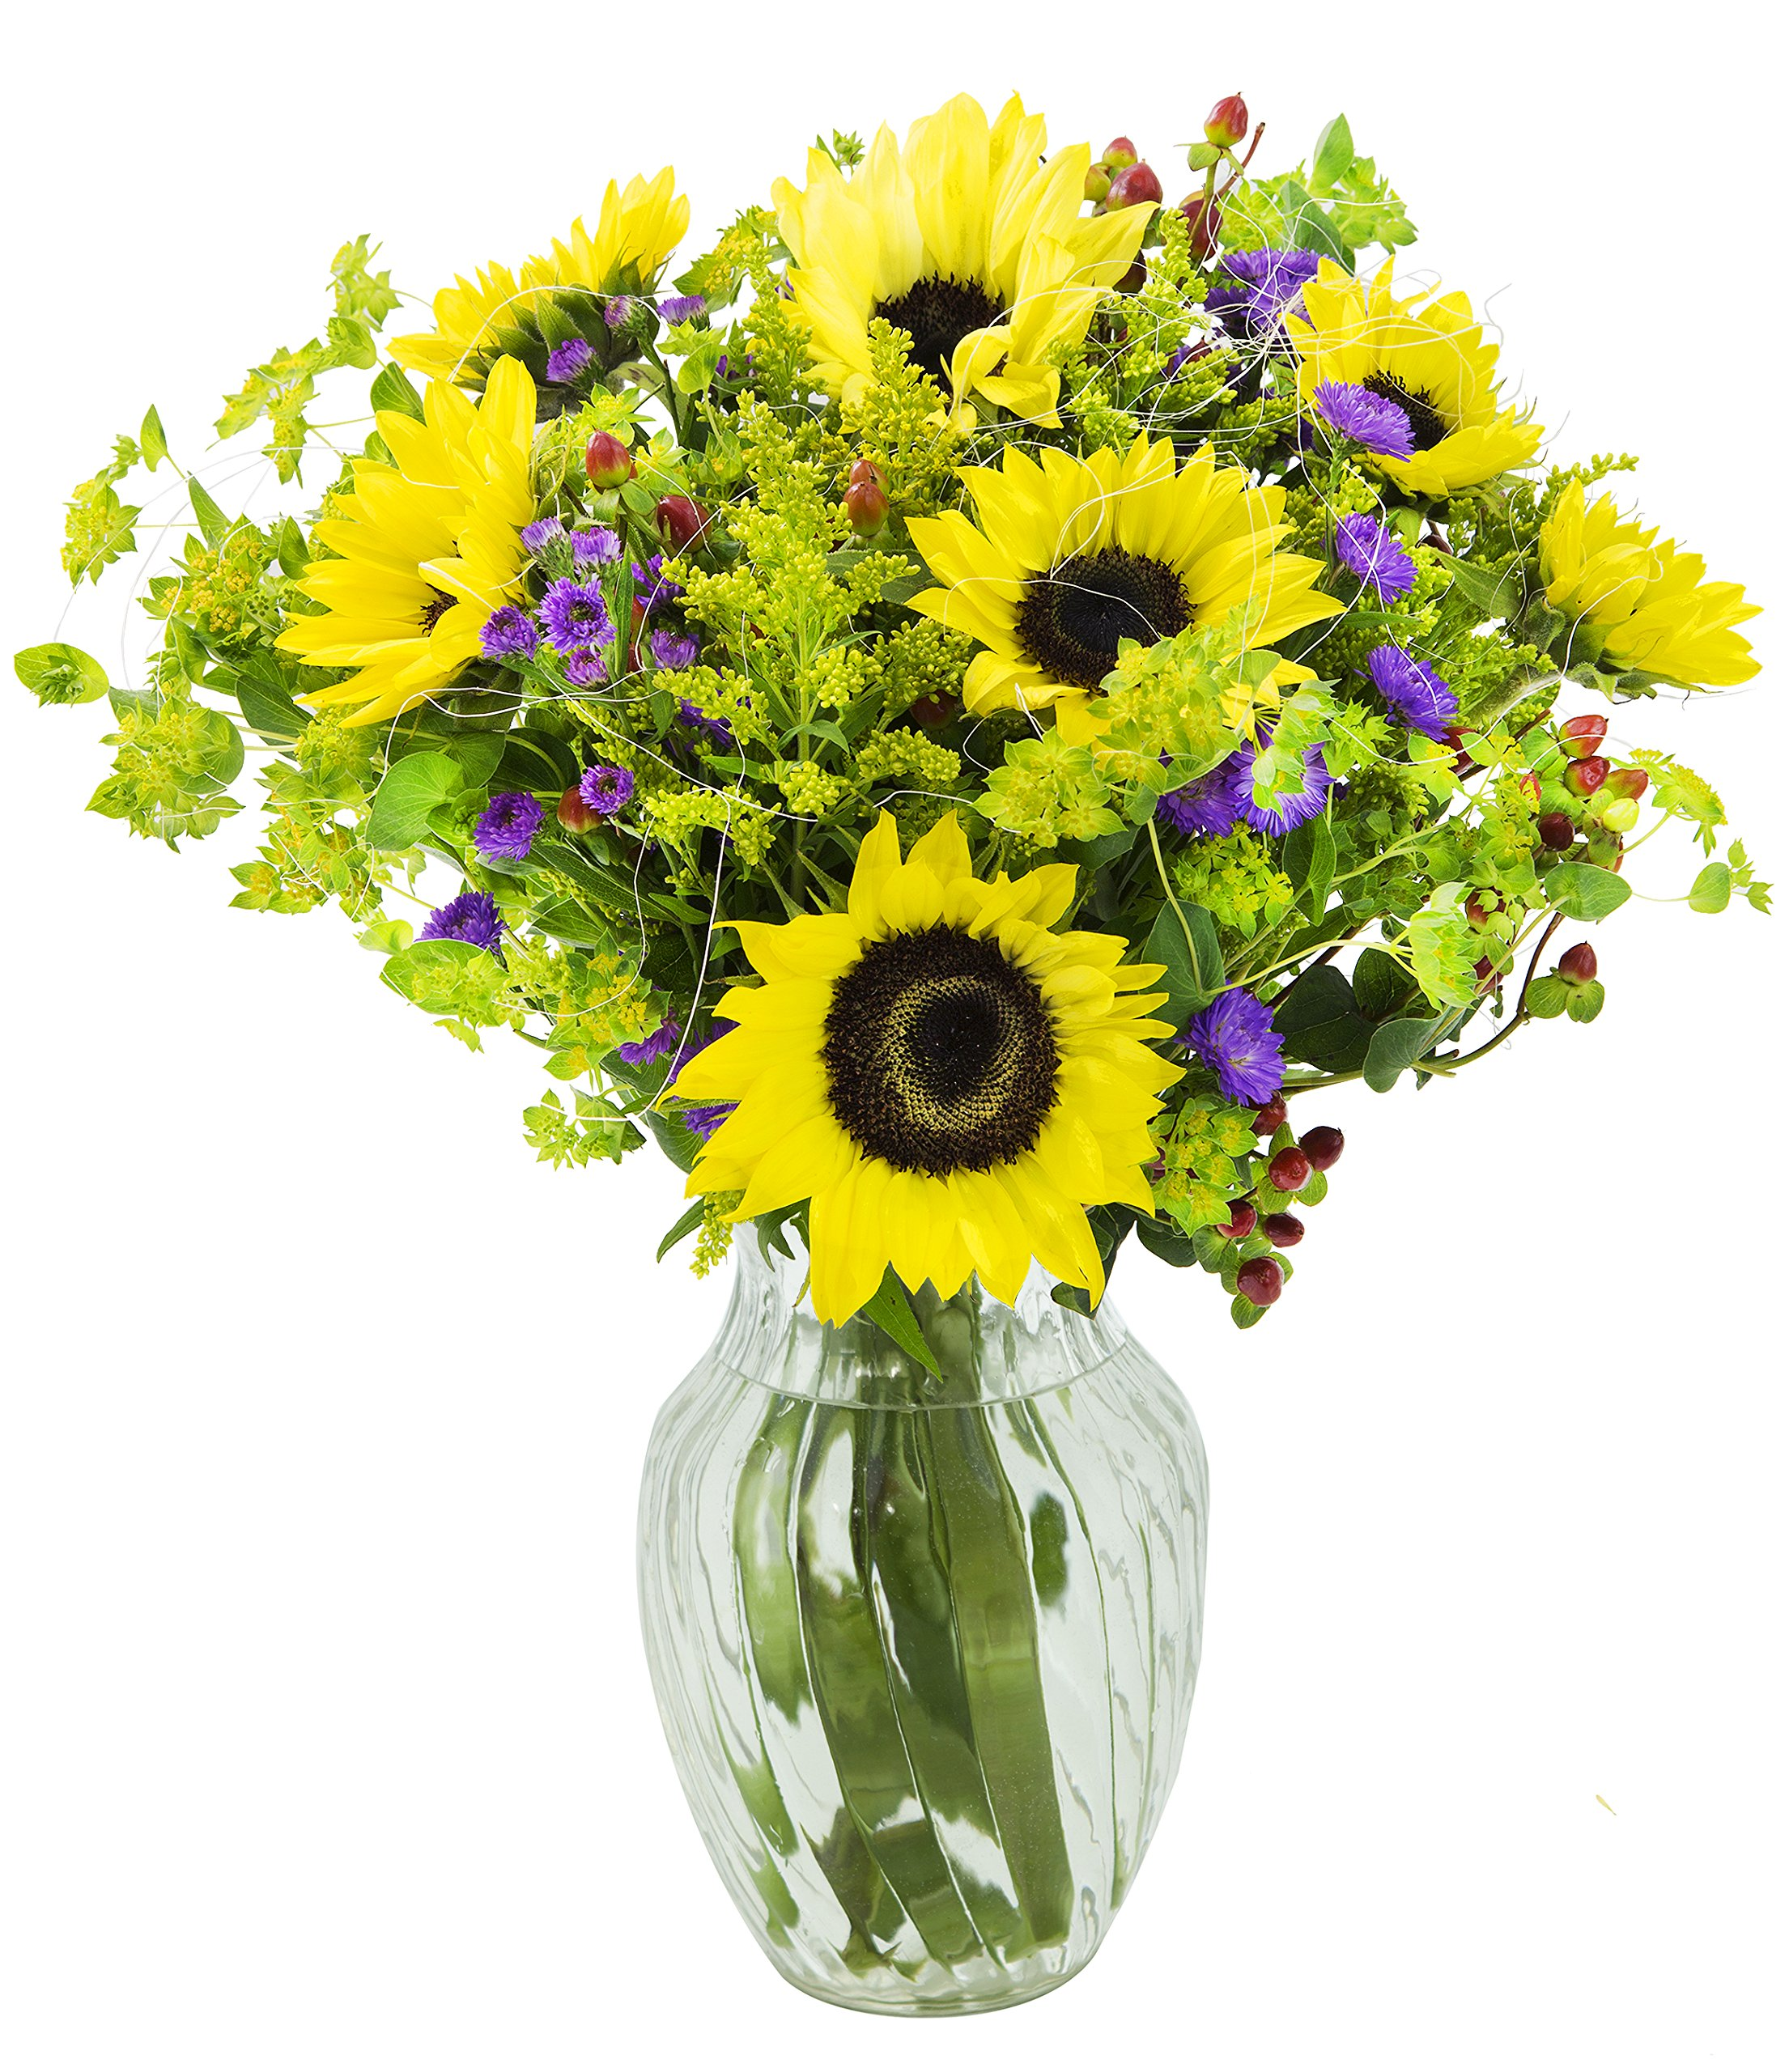 Spring Bloom Sunflower Mixed Bouquet with Free Vase Included